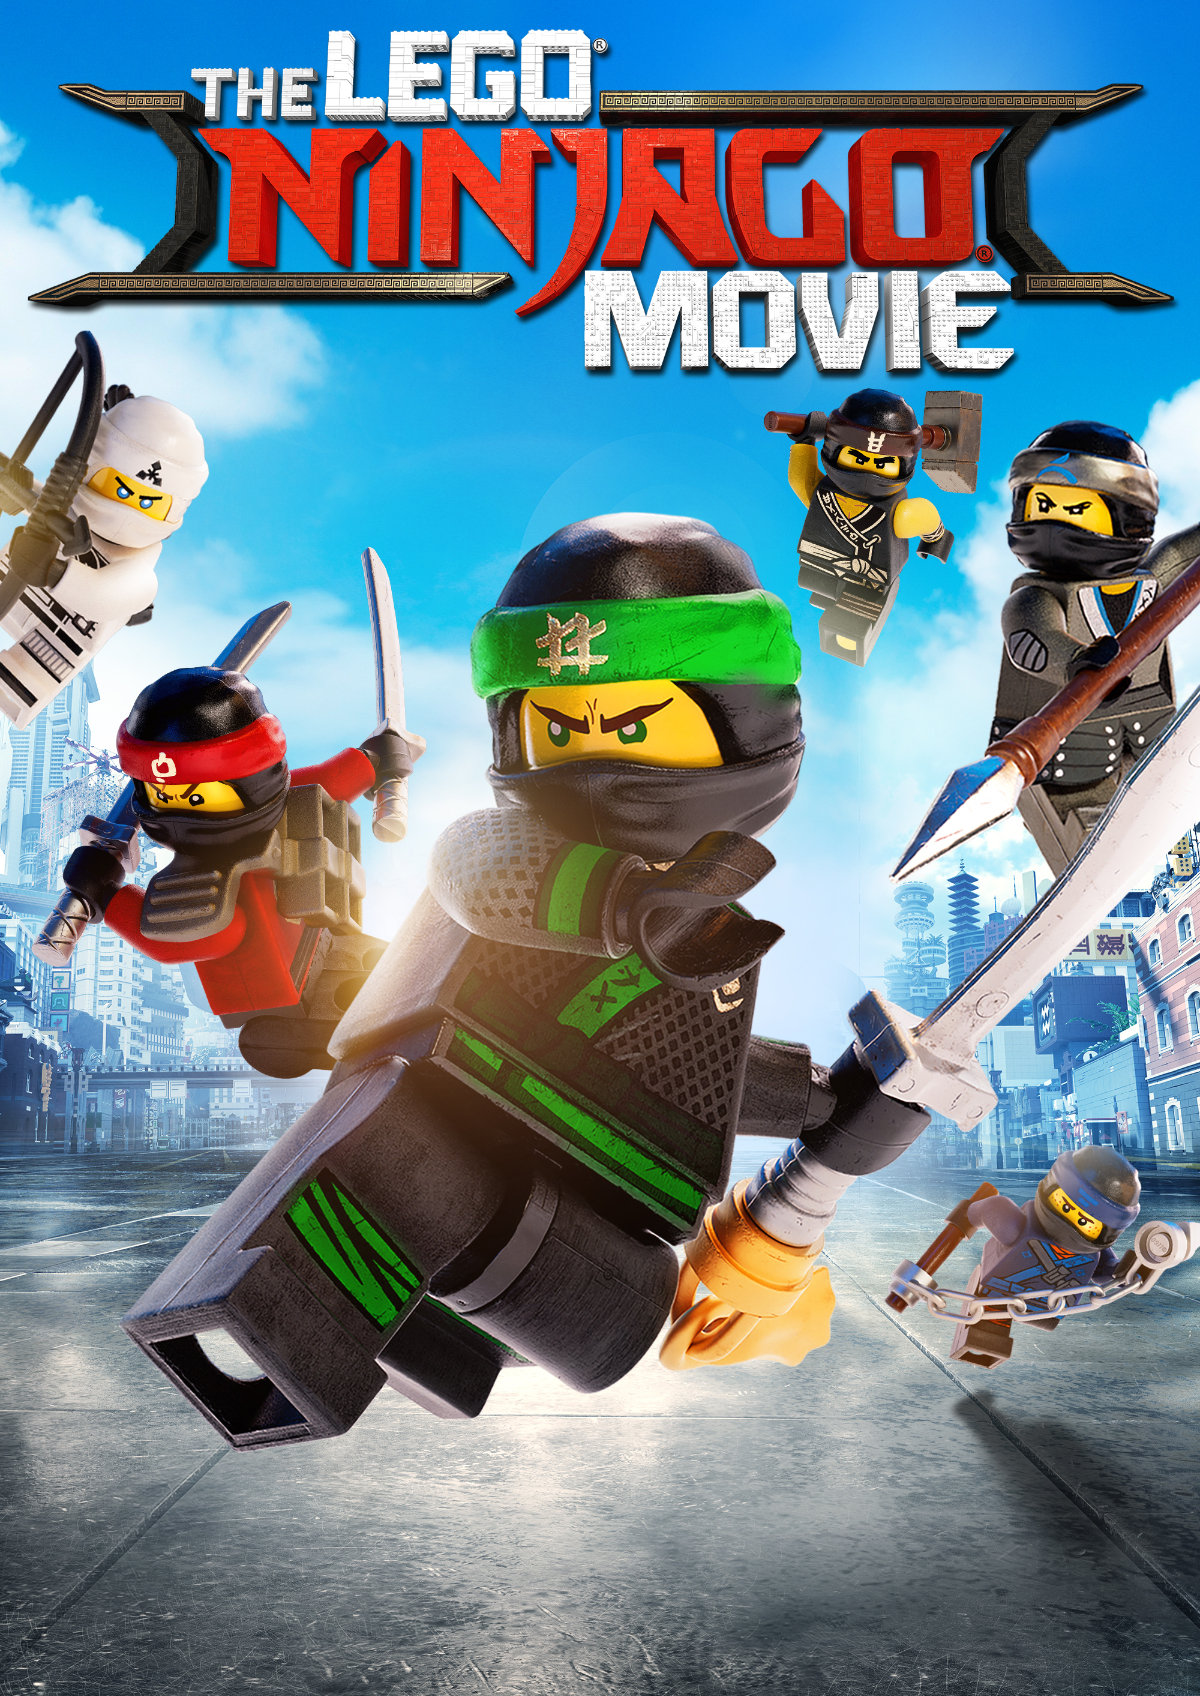 'The LEGO Ninjago Movie' movie poster